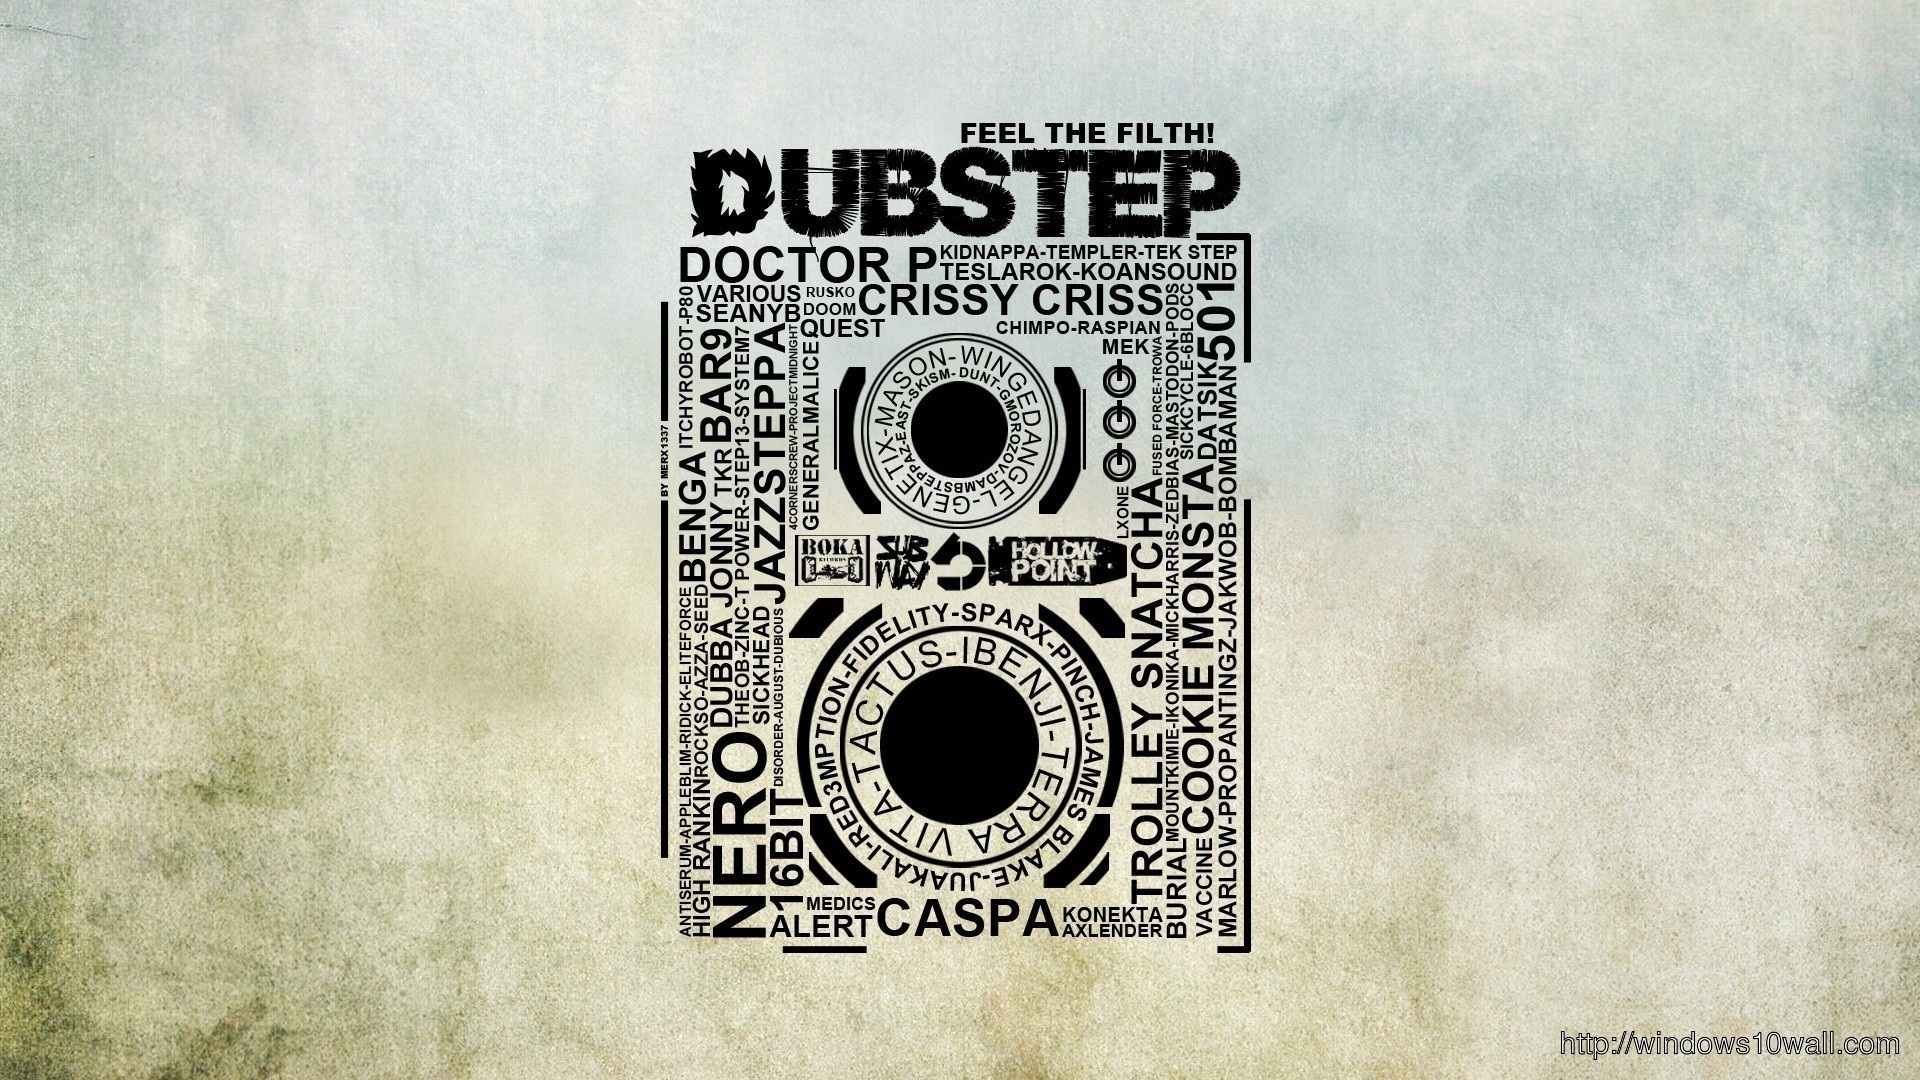 Dubstep Typography Background Wallpaper